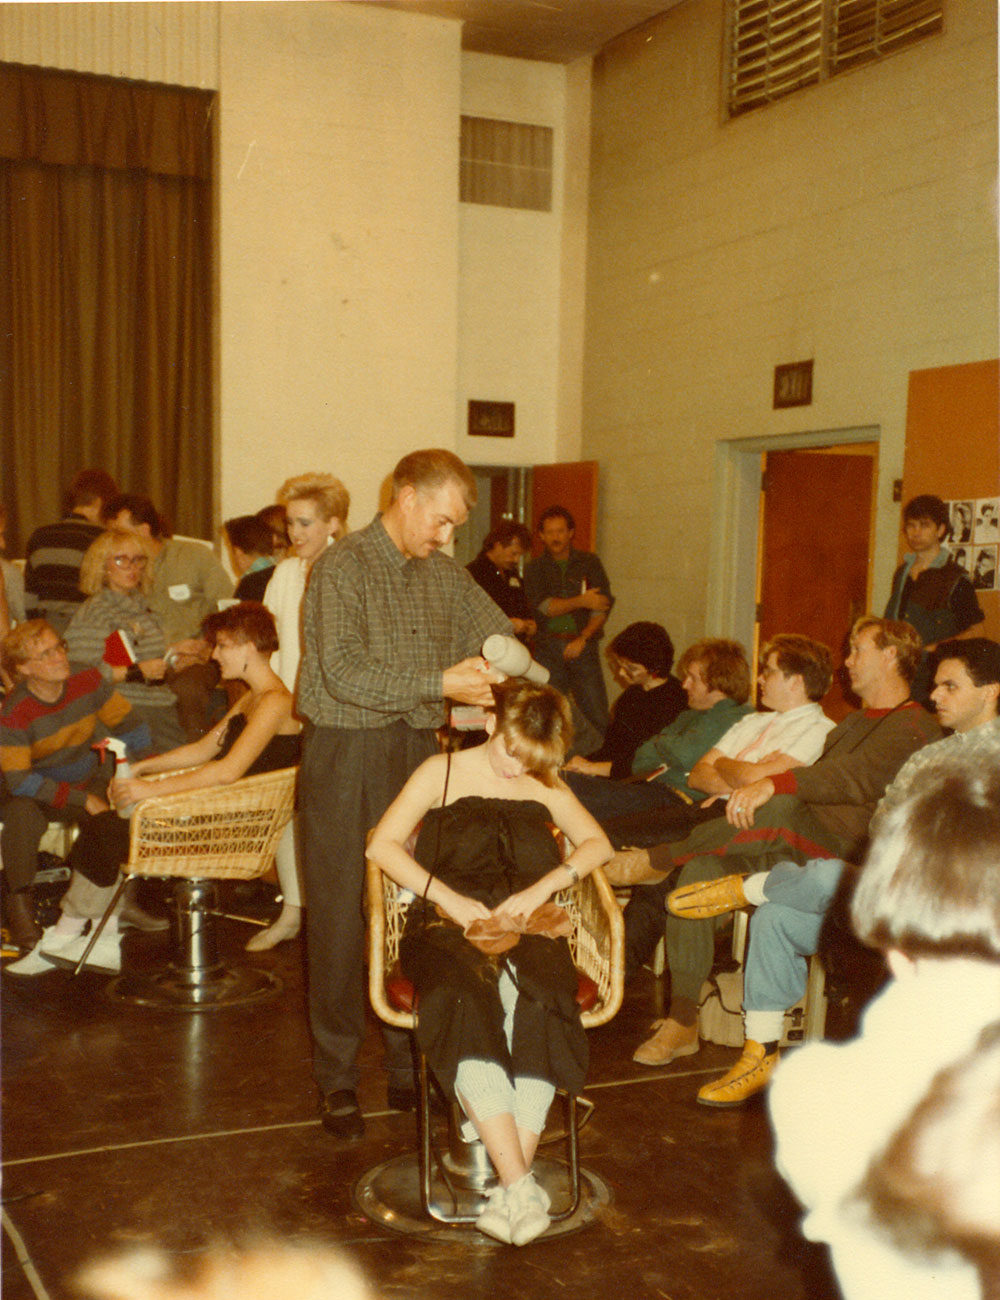 Pre-Paris Parker, Debra models for Irwin Rusk, founder of the RUSK product line, at a stylist education event put on by Neill Corporation. | Source: Debra Neill Baker